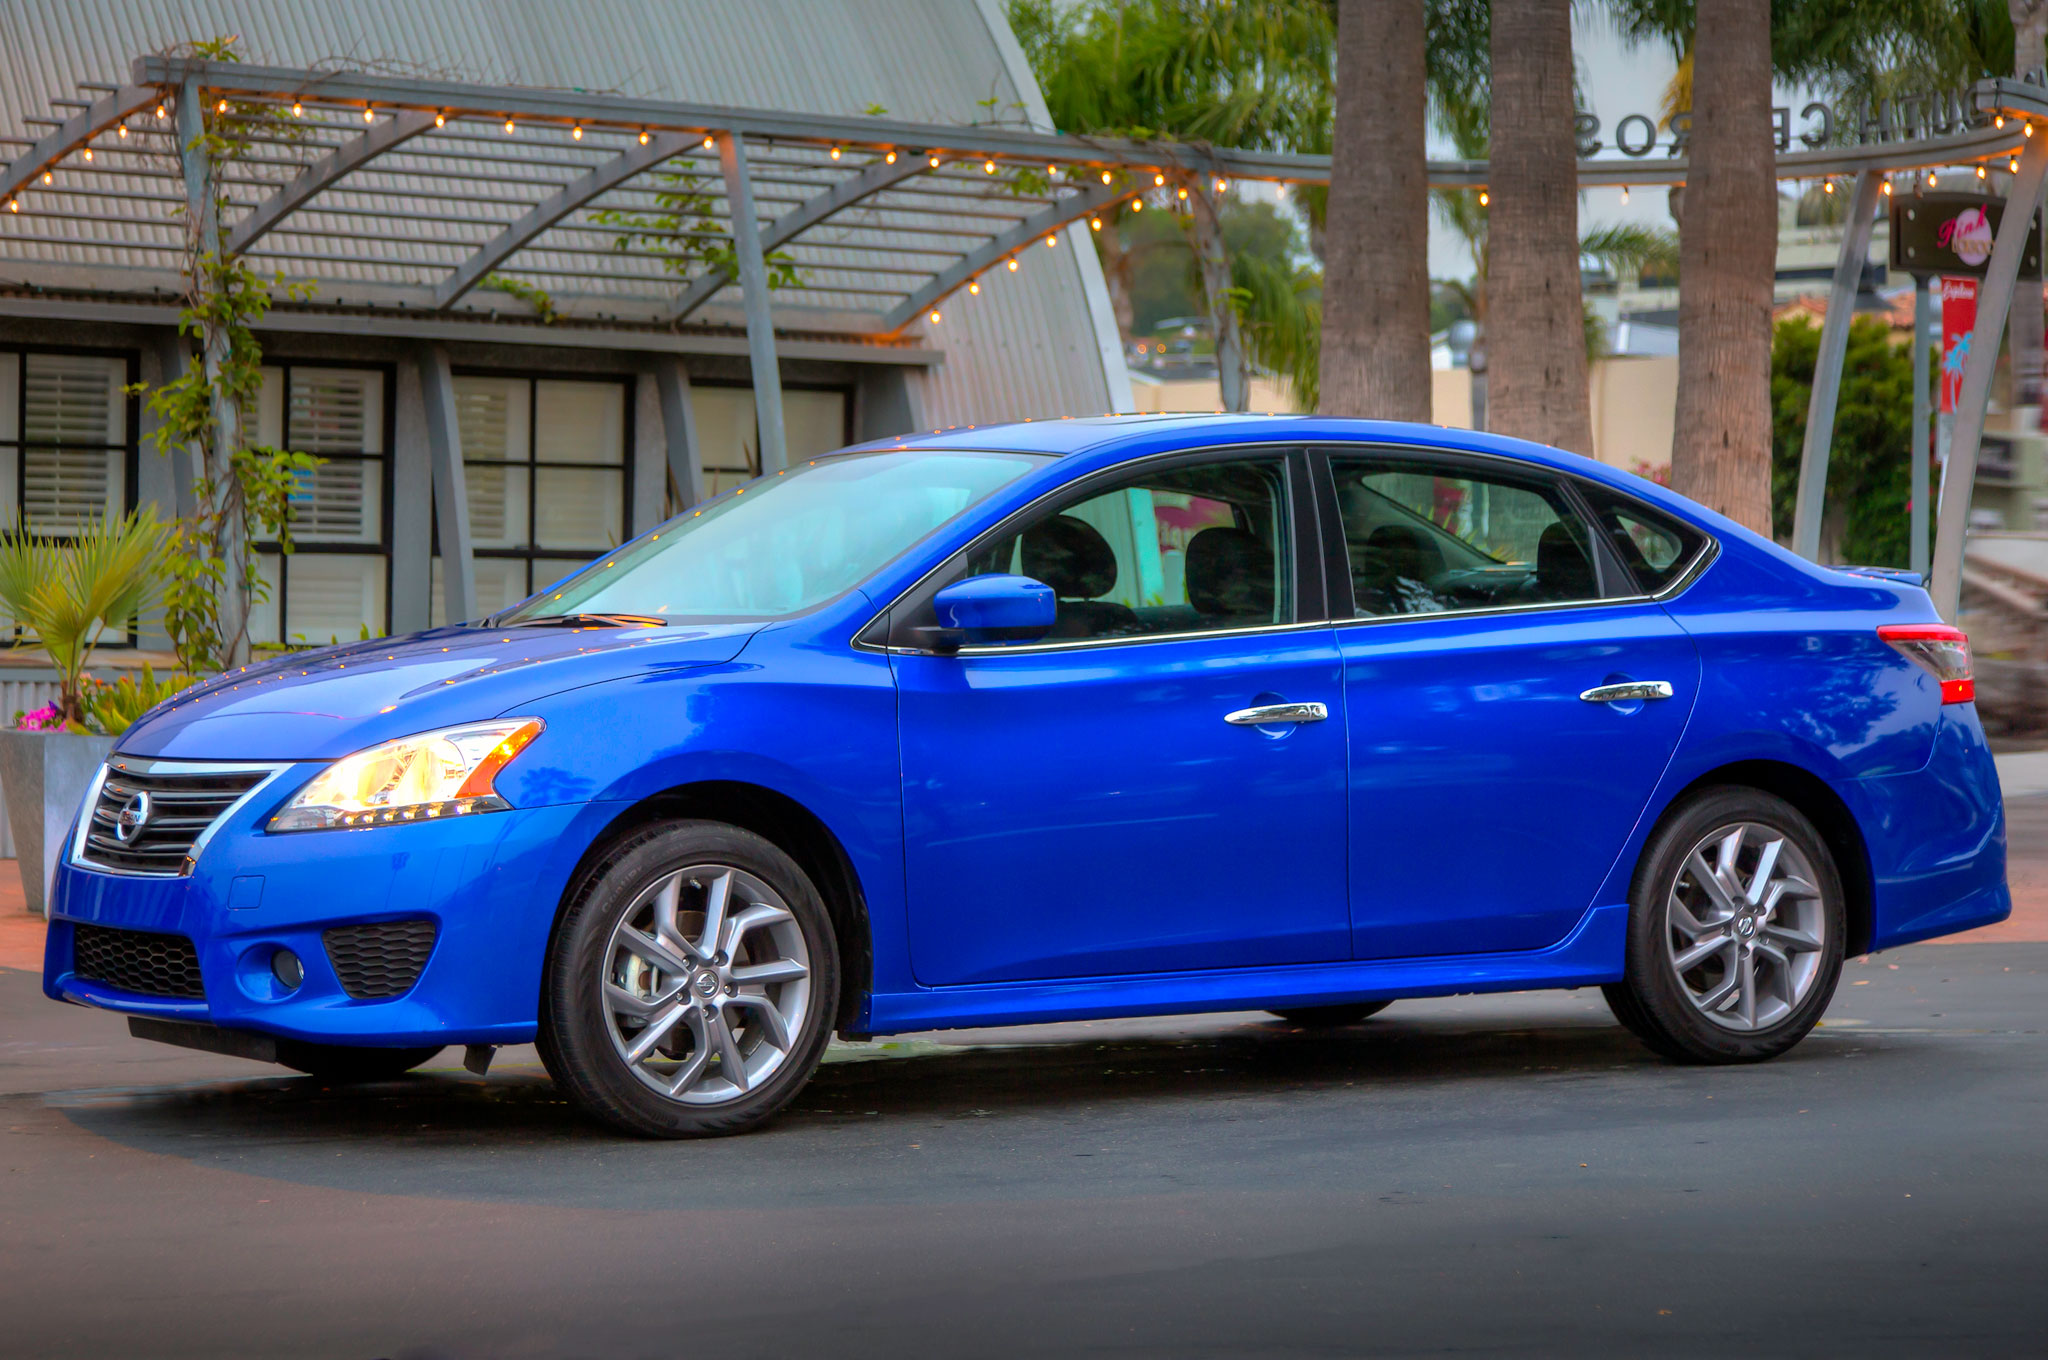 2014 Nissan Sentra Gets Retuned Dynamics, Altima Coupe Gone